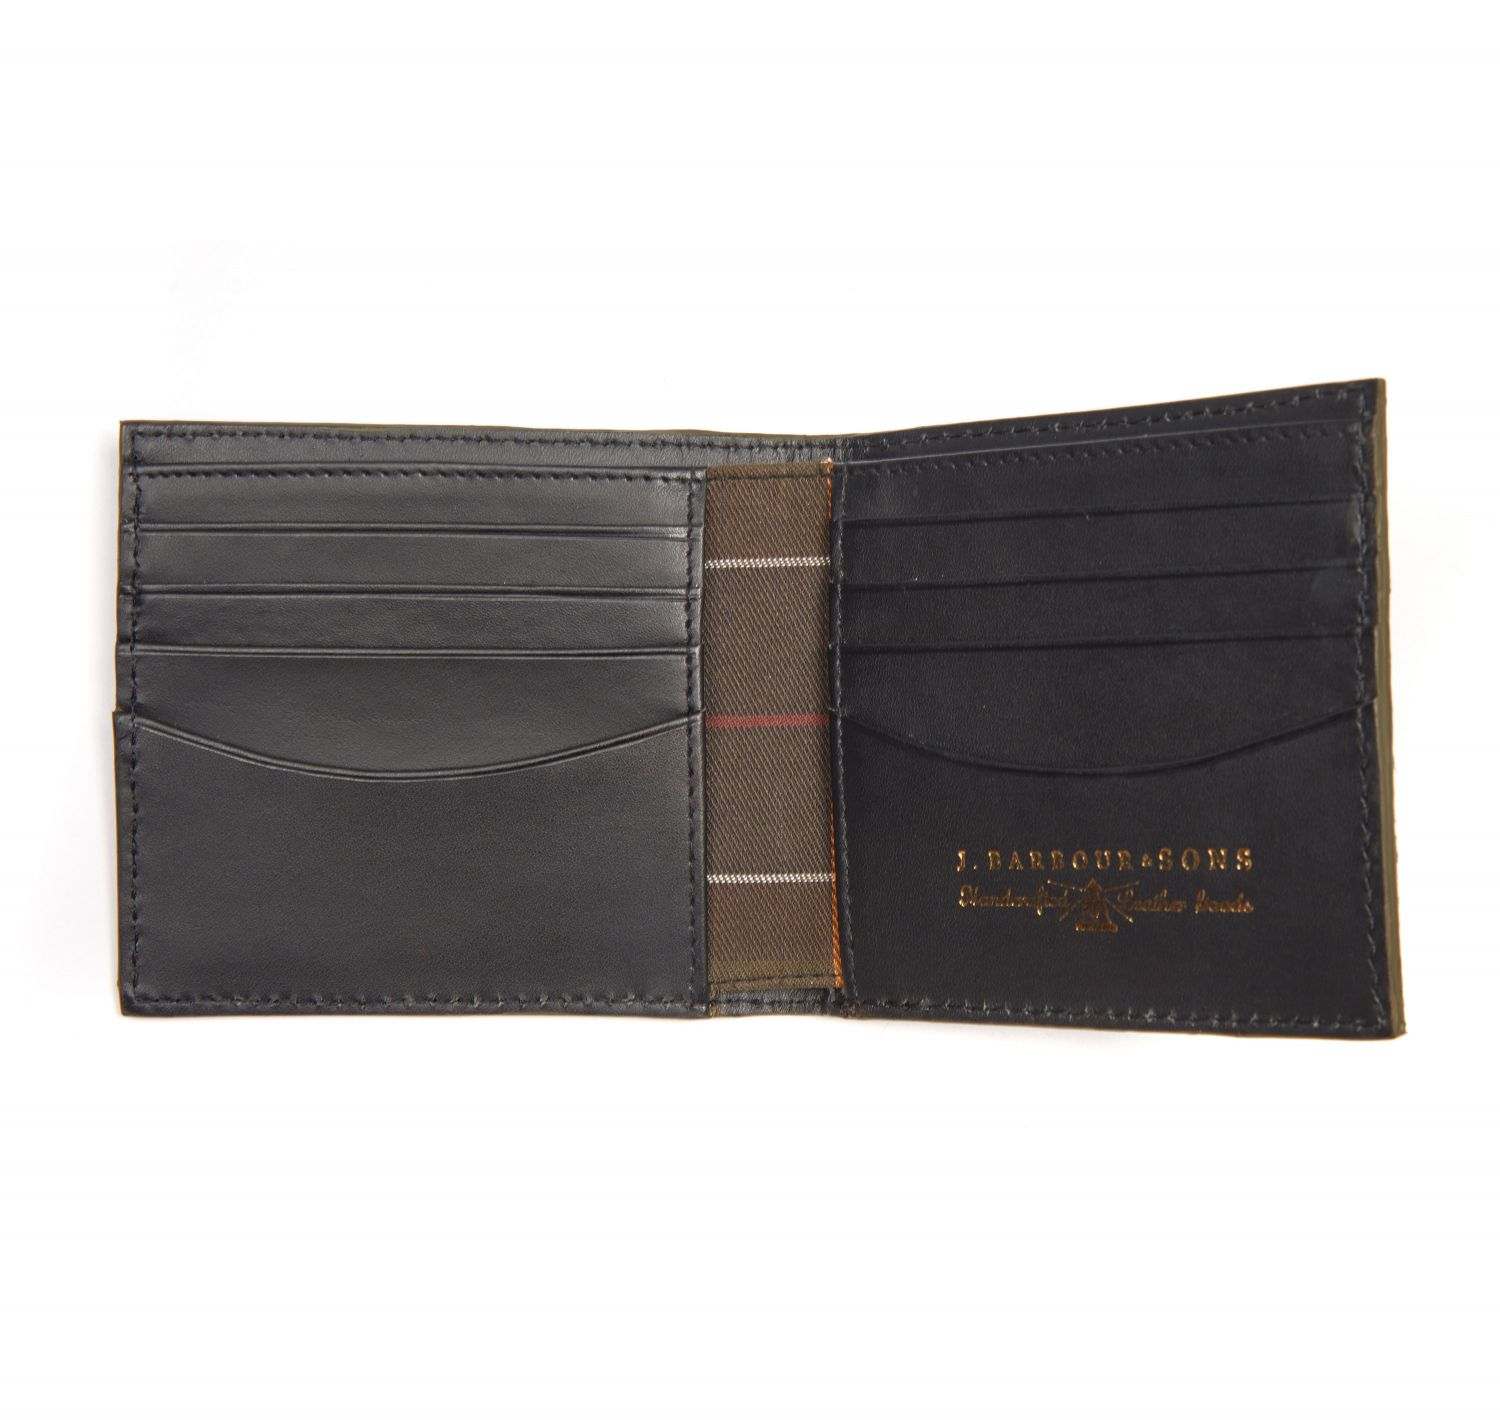 Barbour Grain Leather Billfold Wallet In Gift Box Black